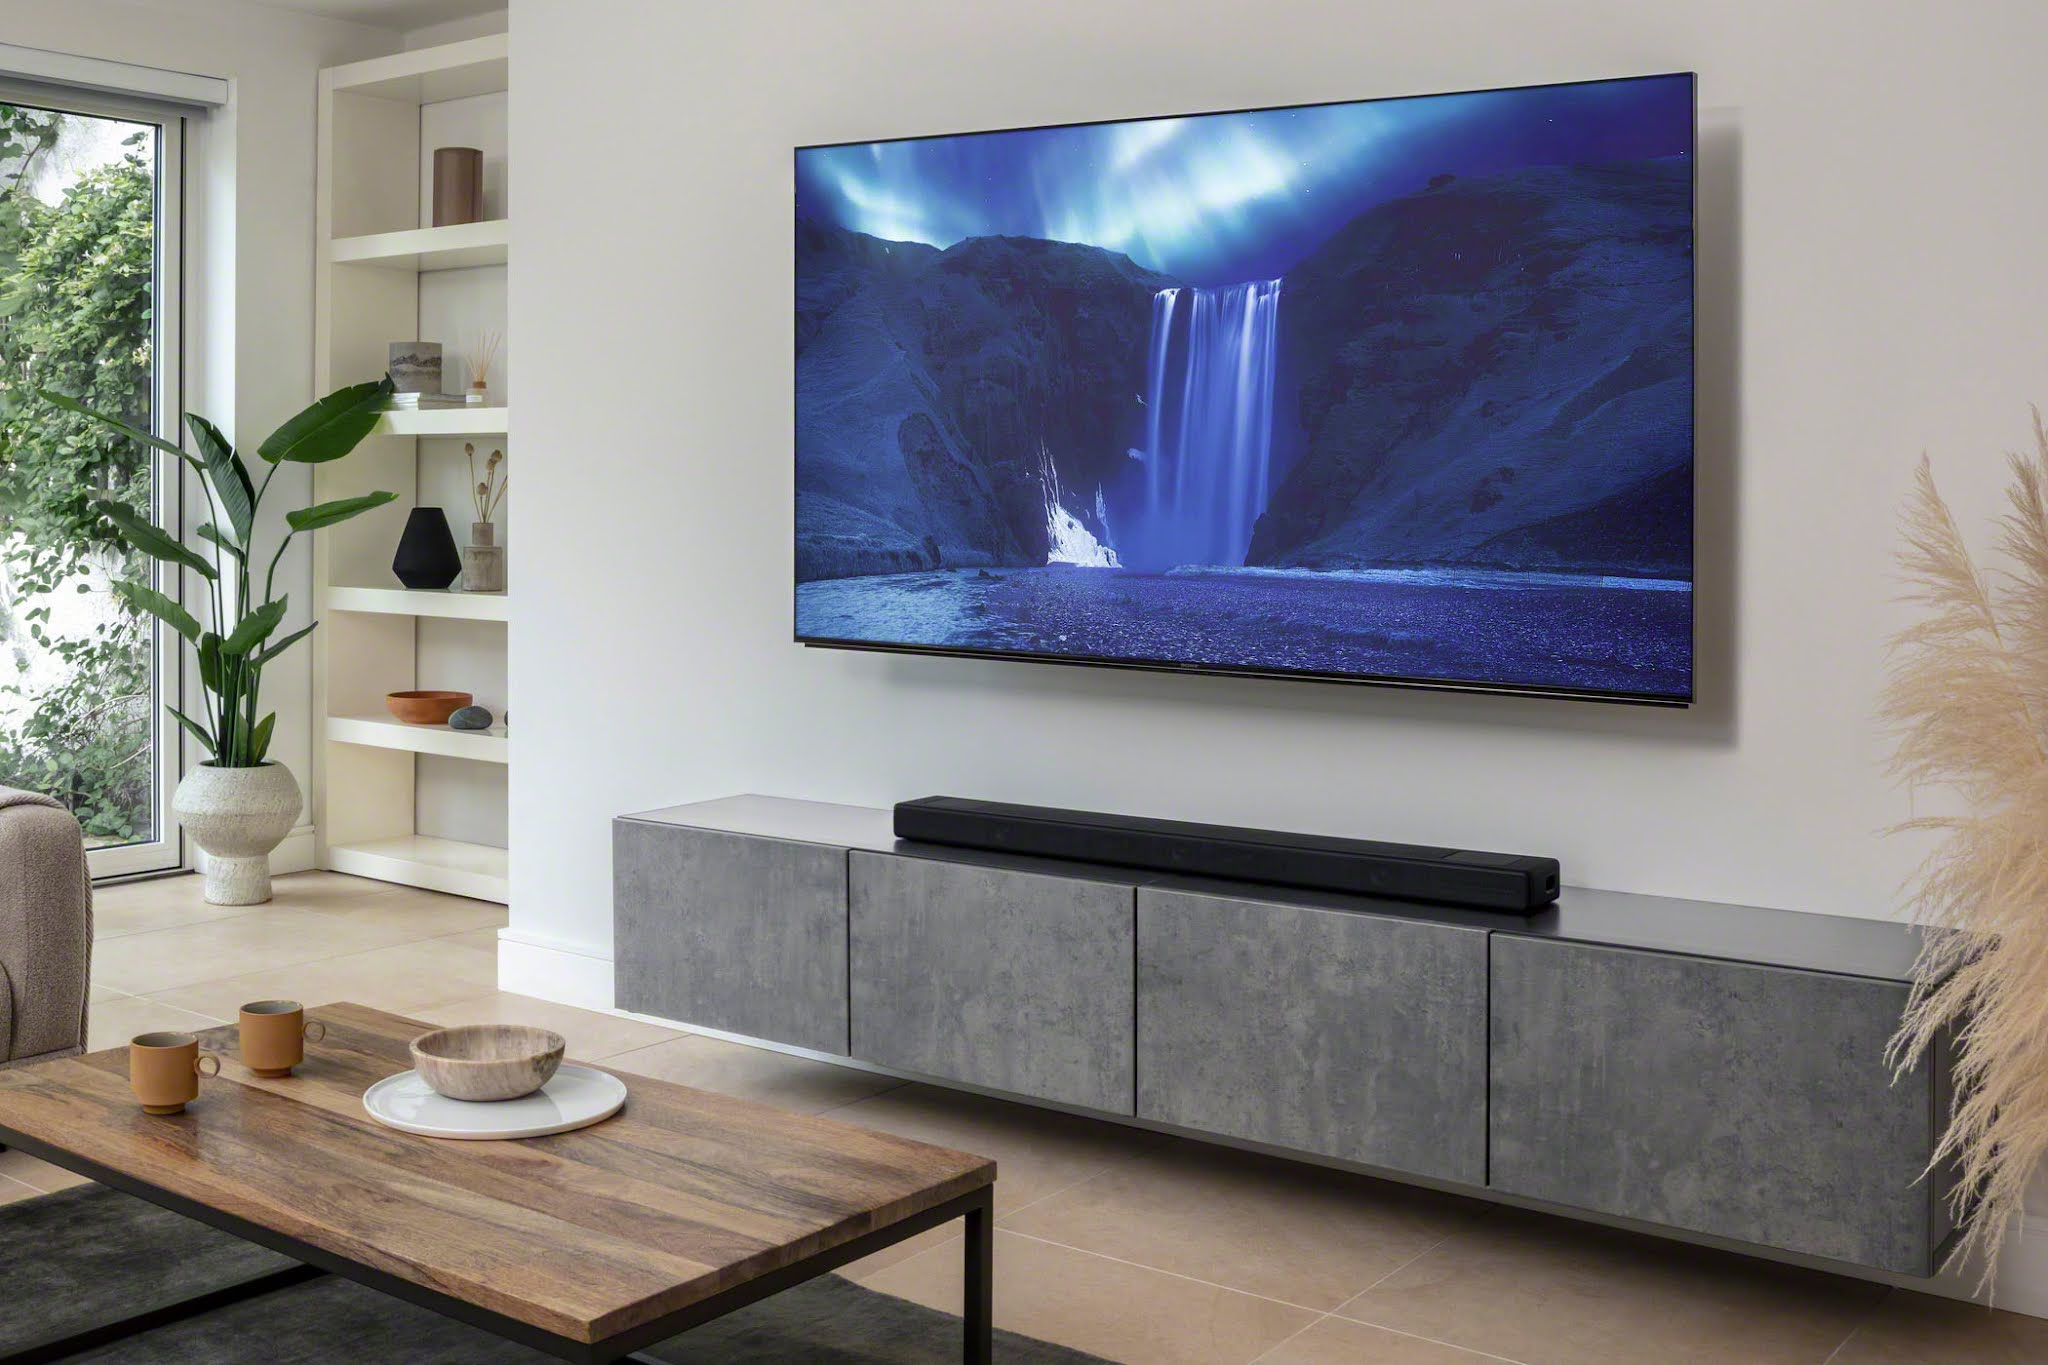 Sony Electronics' New Dolby Atmos/DTS:X HT-A5000 Soundbar Takes Movie Entertainment to New Heights